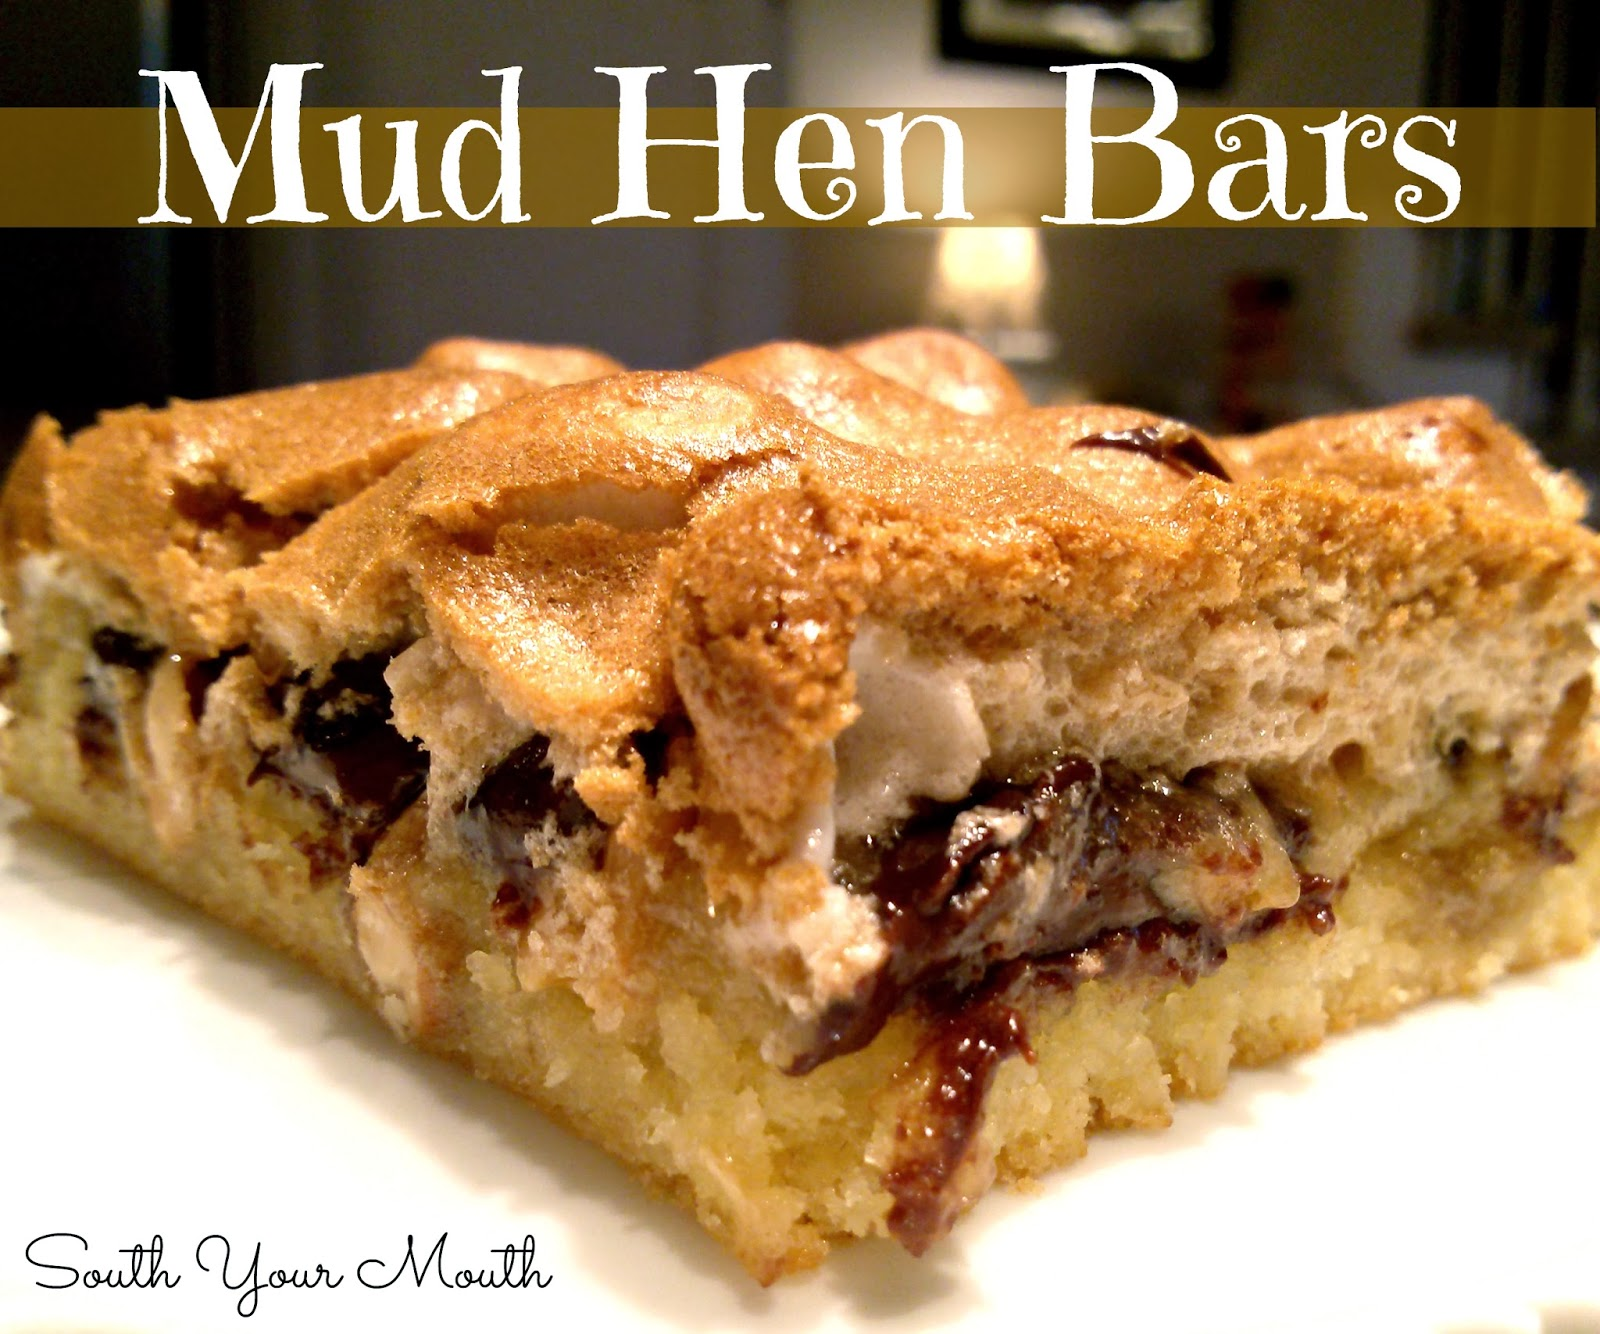 South Your Mouth: Mud Hen Bars